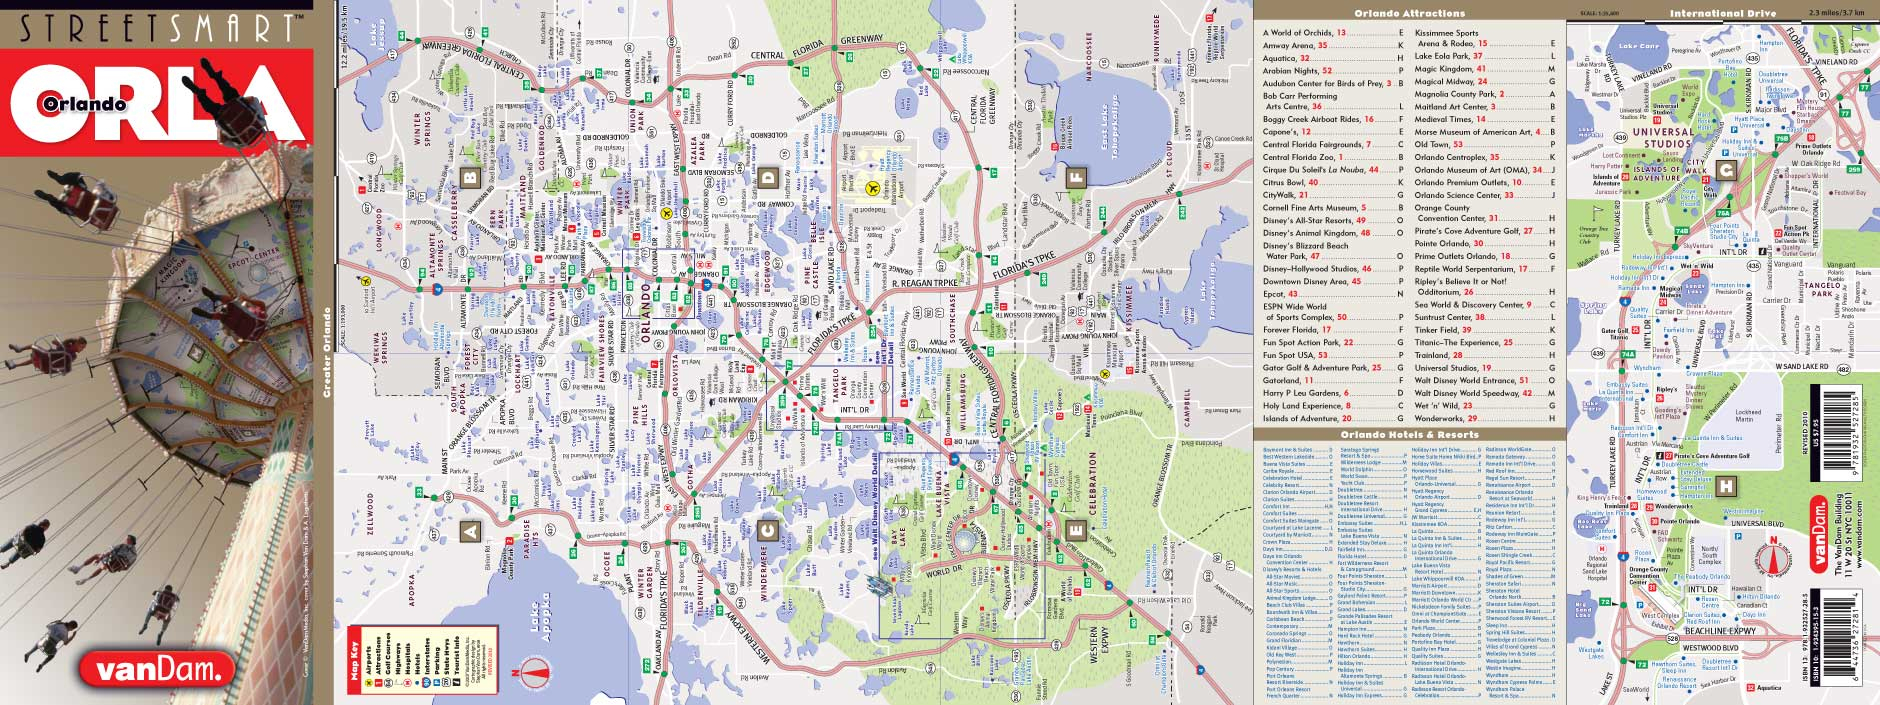 Central Florida Zoo Park Map - Library And Zoo Idoimages.co - Central Florida Zoo Map